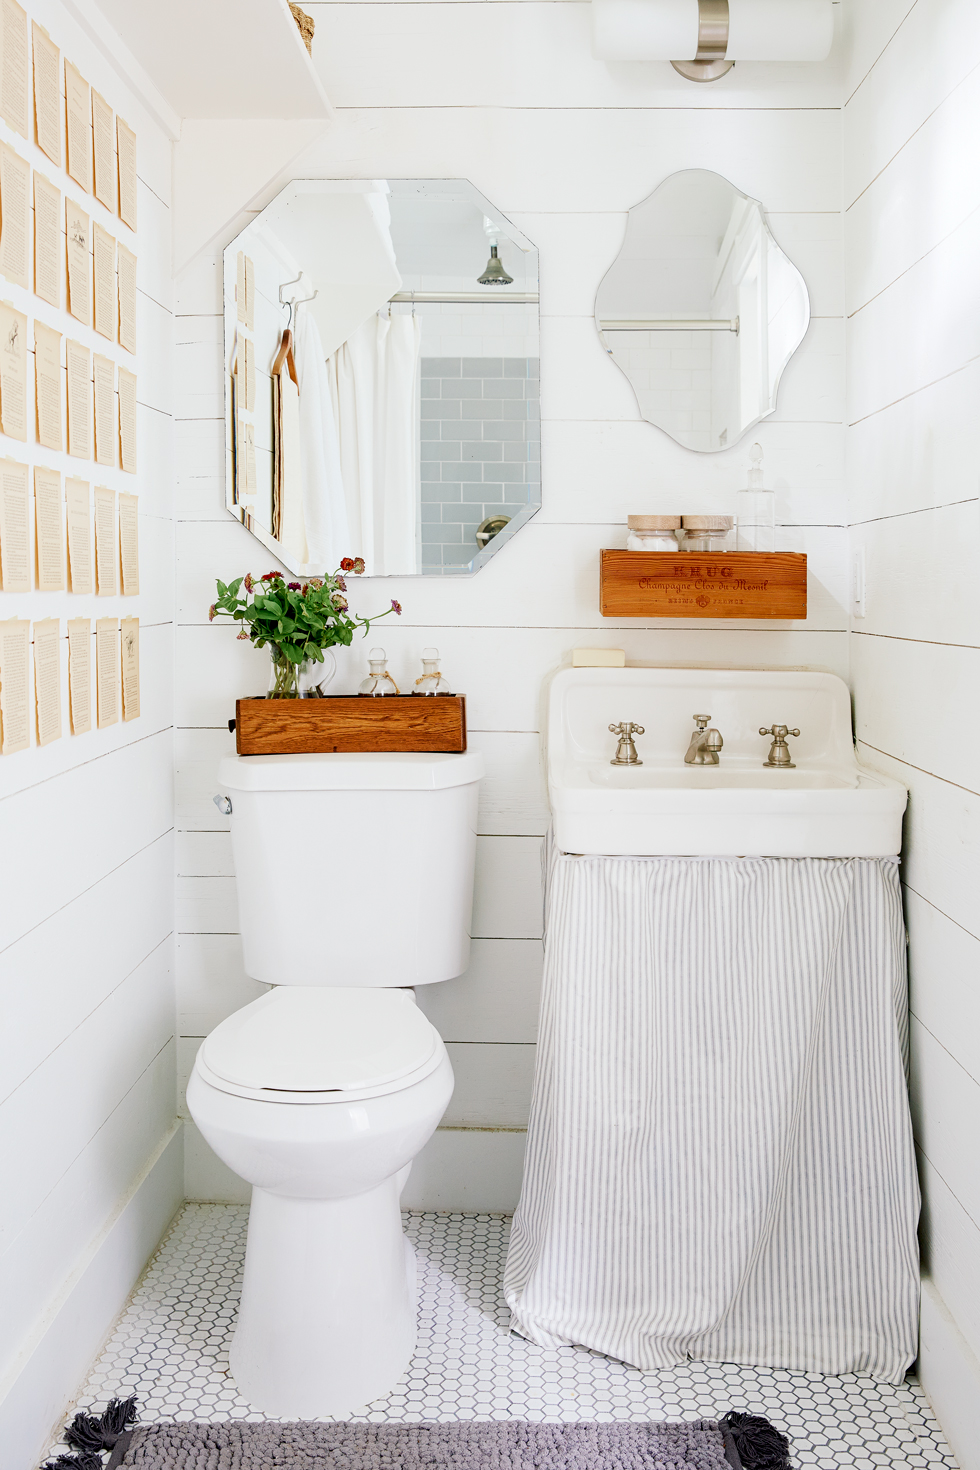 Bathroom Storage Ideas | Tiny Bathroom Ideas | HouseLogic